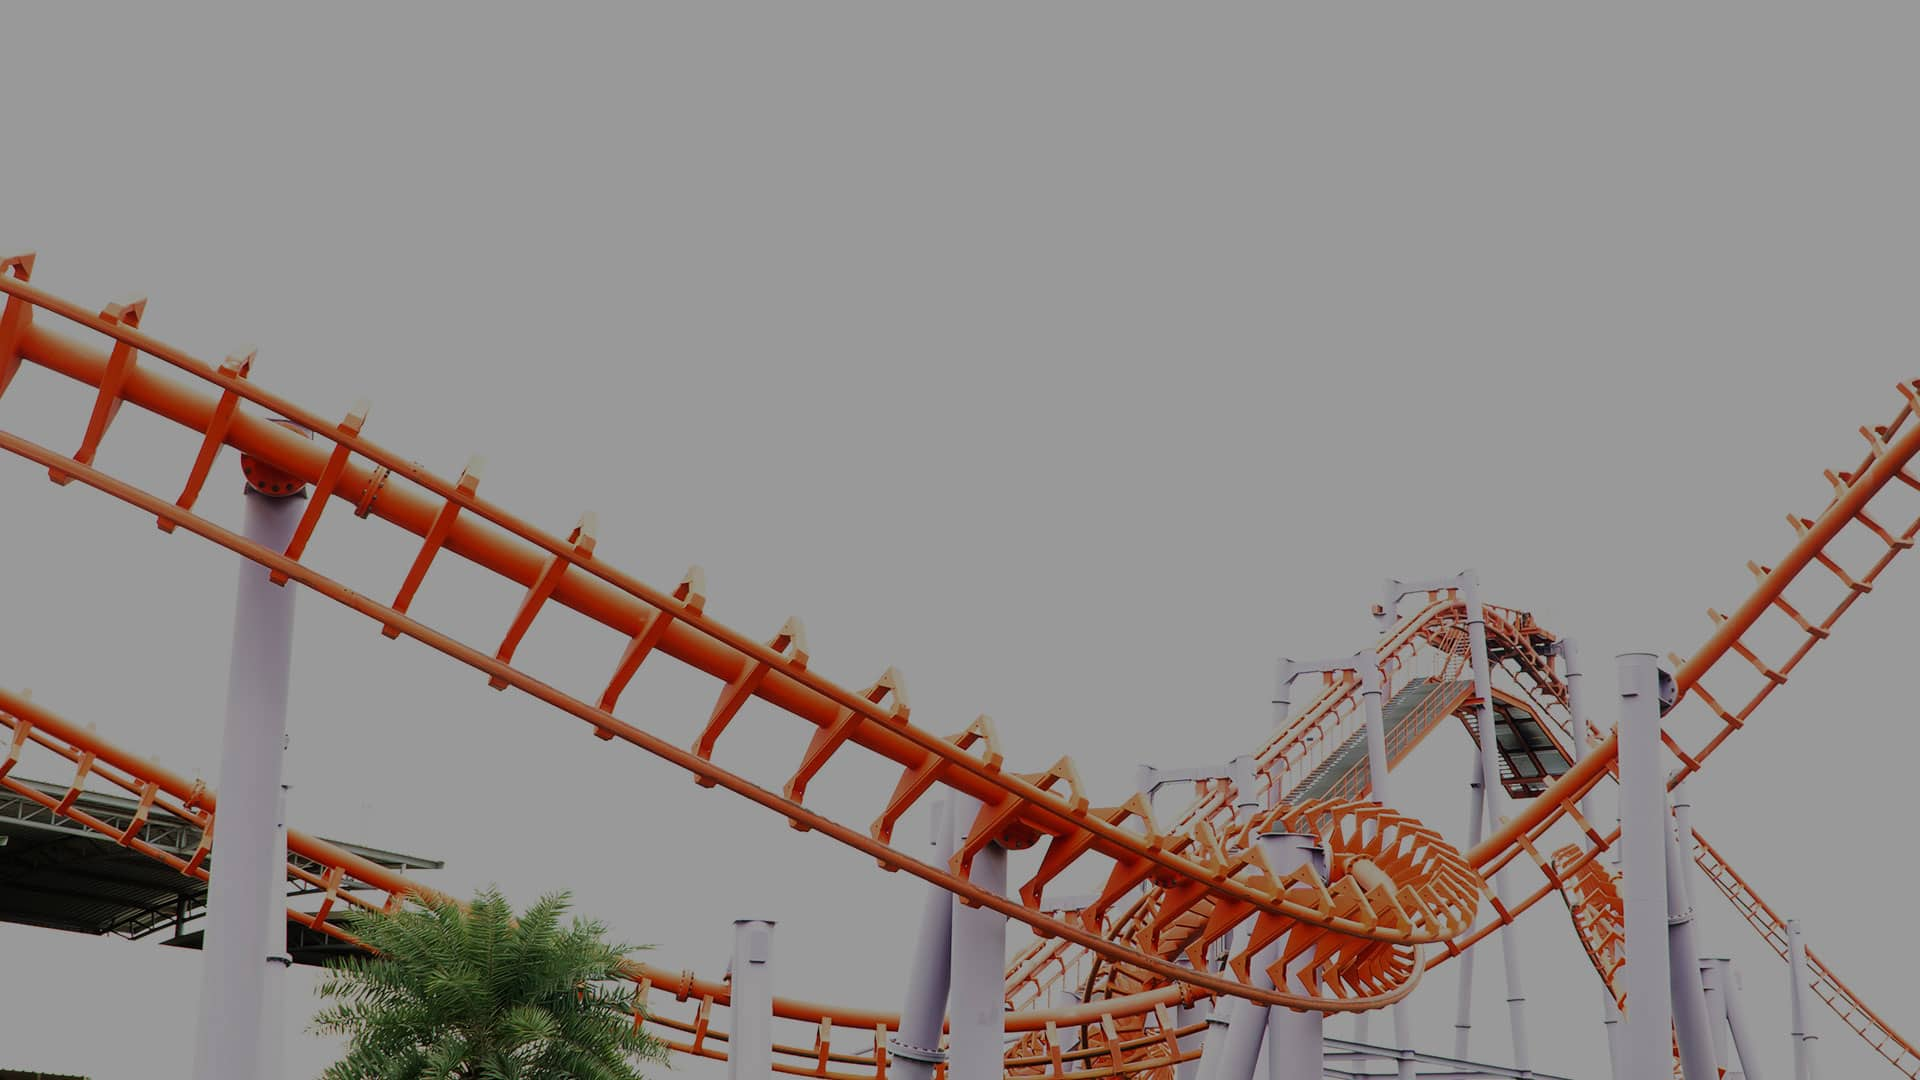 The Job Search Roller Coaster